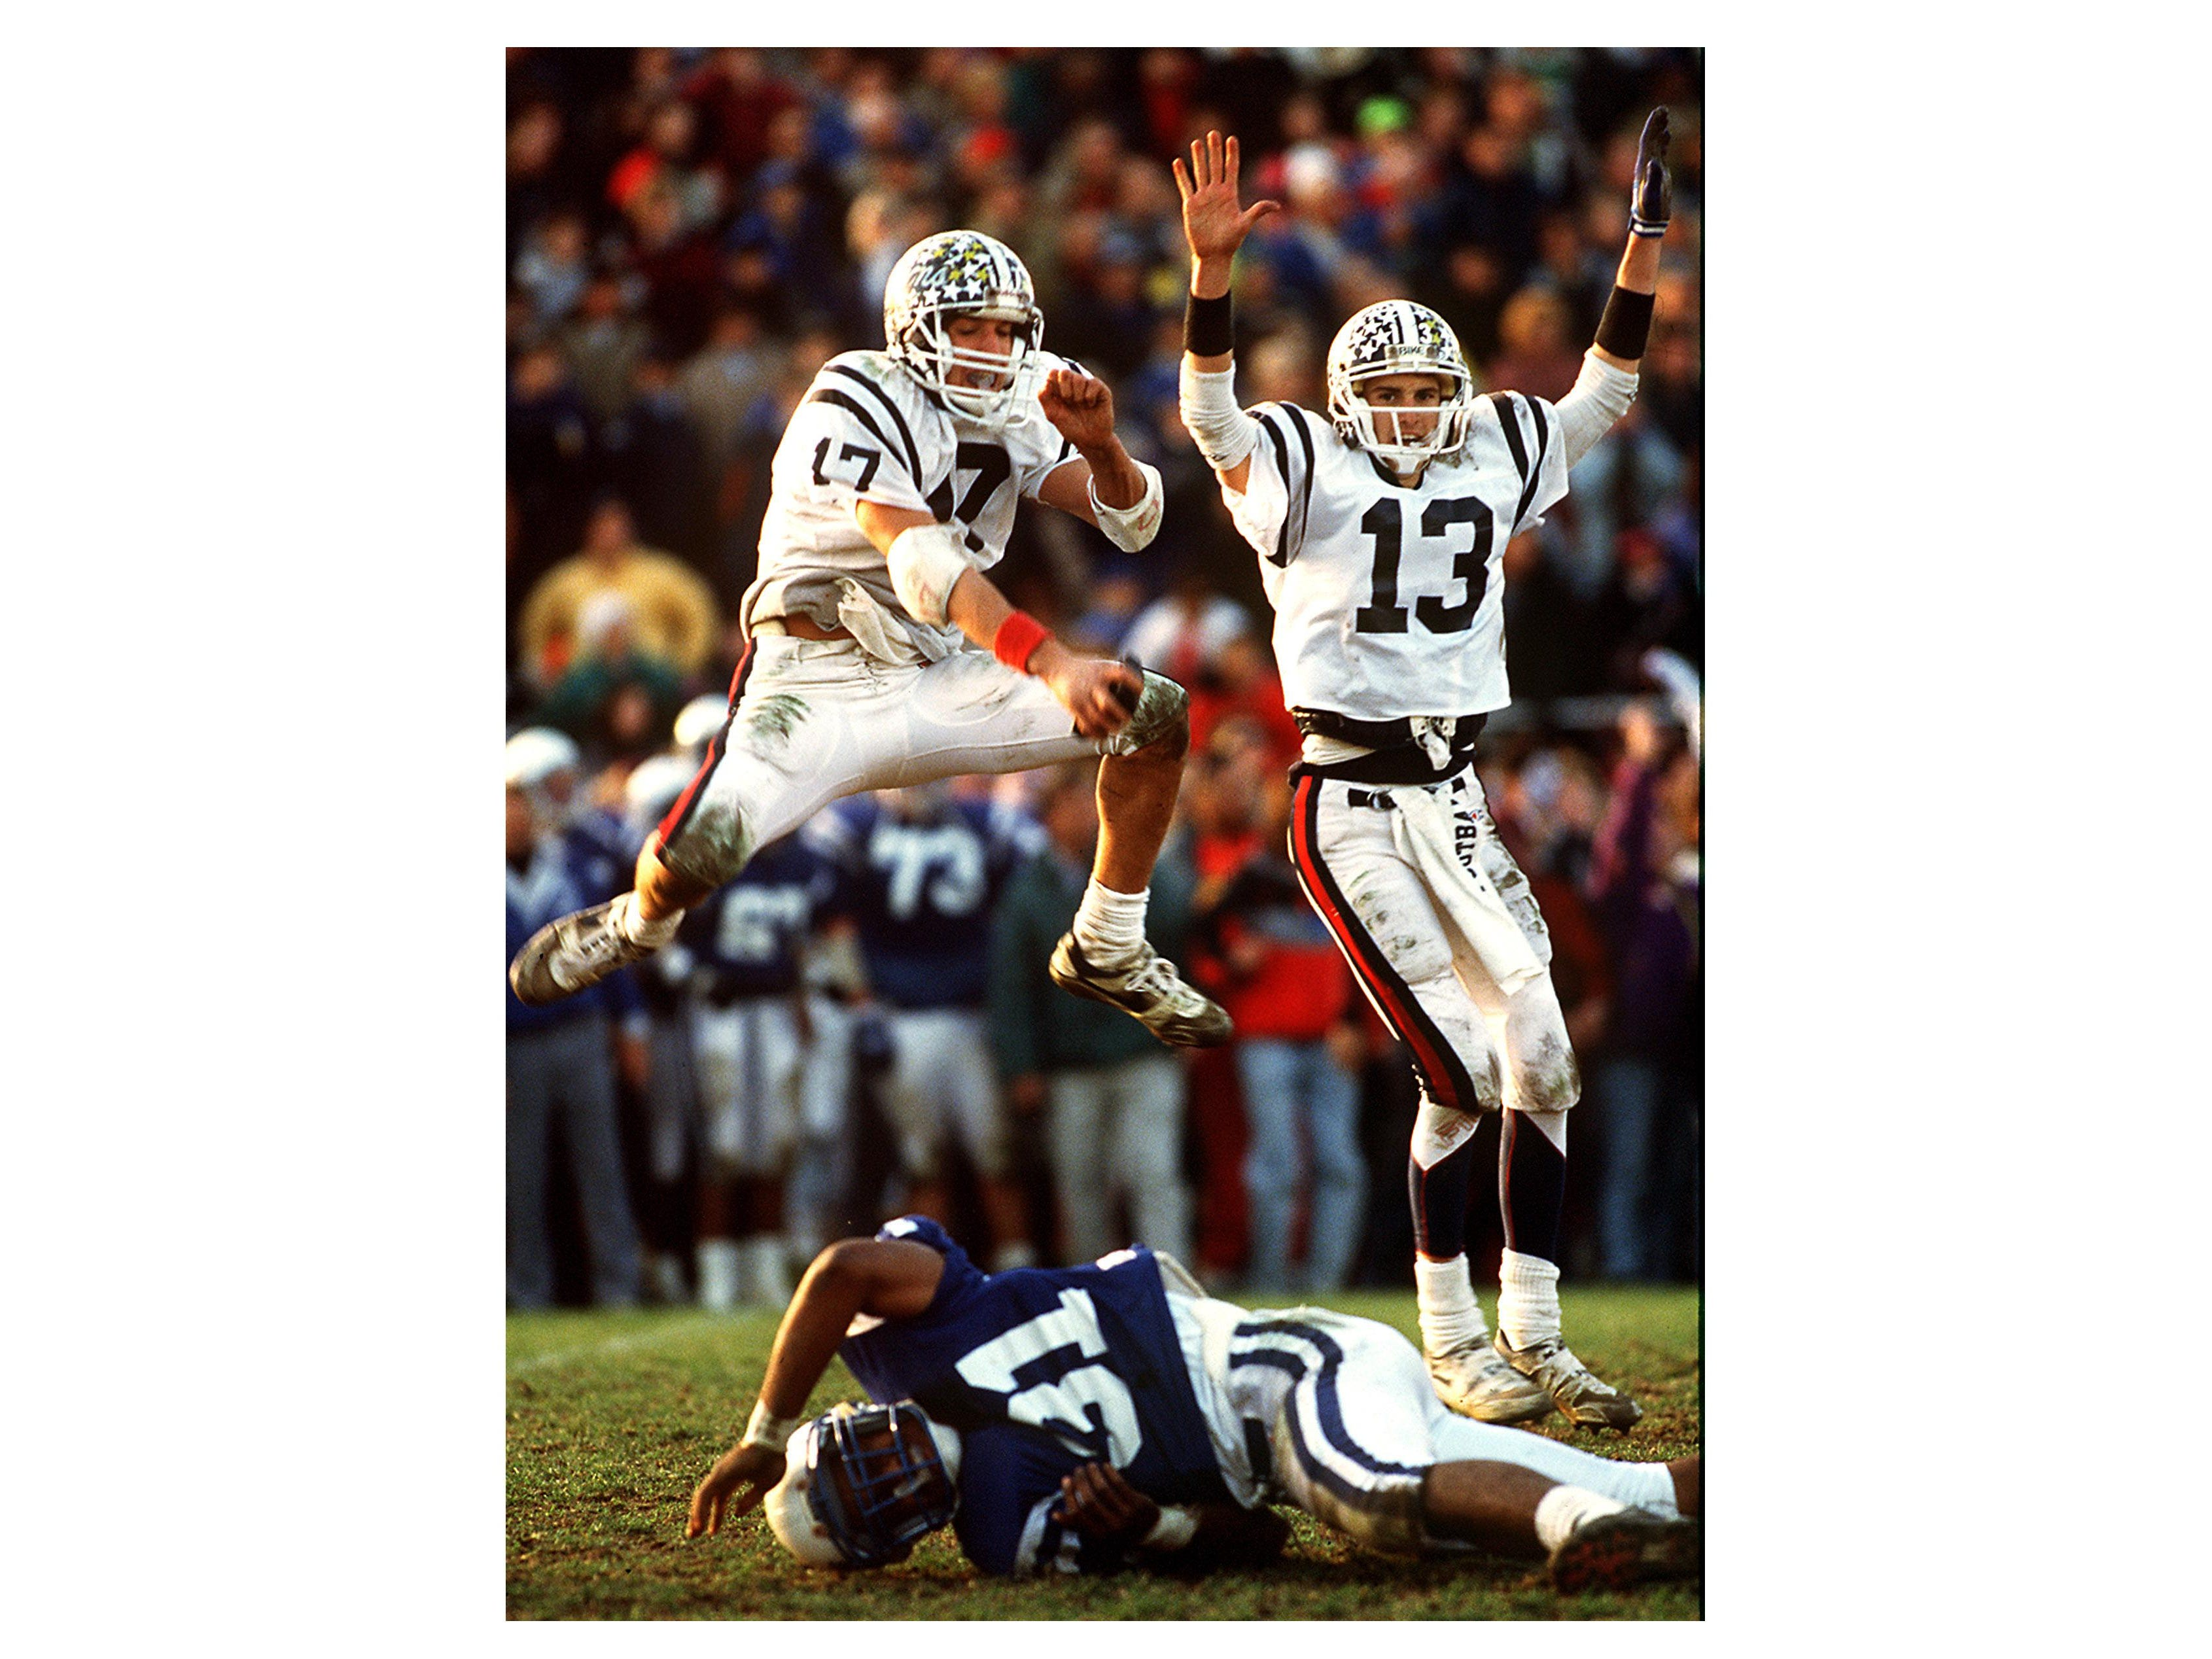 1) Montclair, NJ, December 1990--The favorite image of my career was being witness to a 'miracle' whose legend has only grown over the past 24 years. In what been known as 'The greatest high school game ever played' Holder Eric Schaeb, l, and Mike Groh celebrate as Groh's 37 yrd FG with 0:01 second left in the game, clears the uprights at Woodman Field in Montclair. Randolph beat heavily favored Montclair 22-21 to capture the 1990 Group 4 Sec 2 State Championship. Photo by Bob Karp